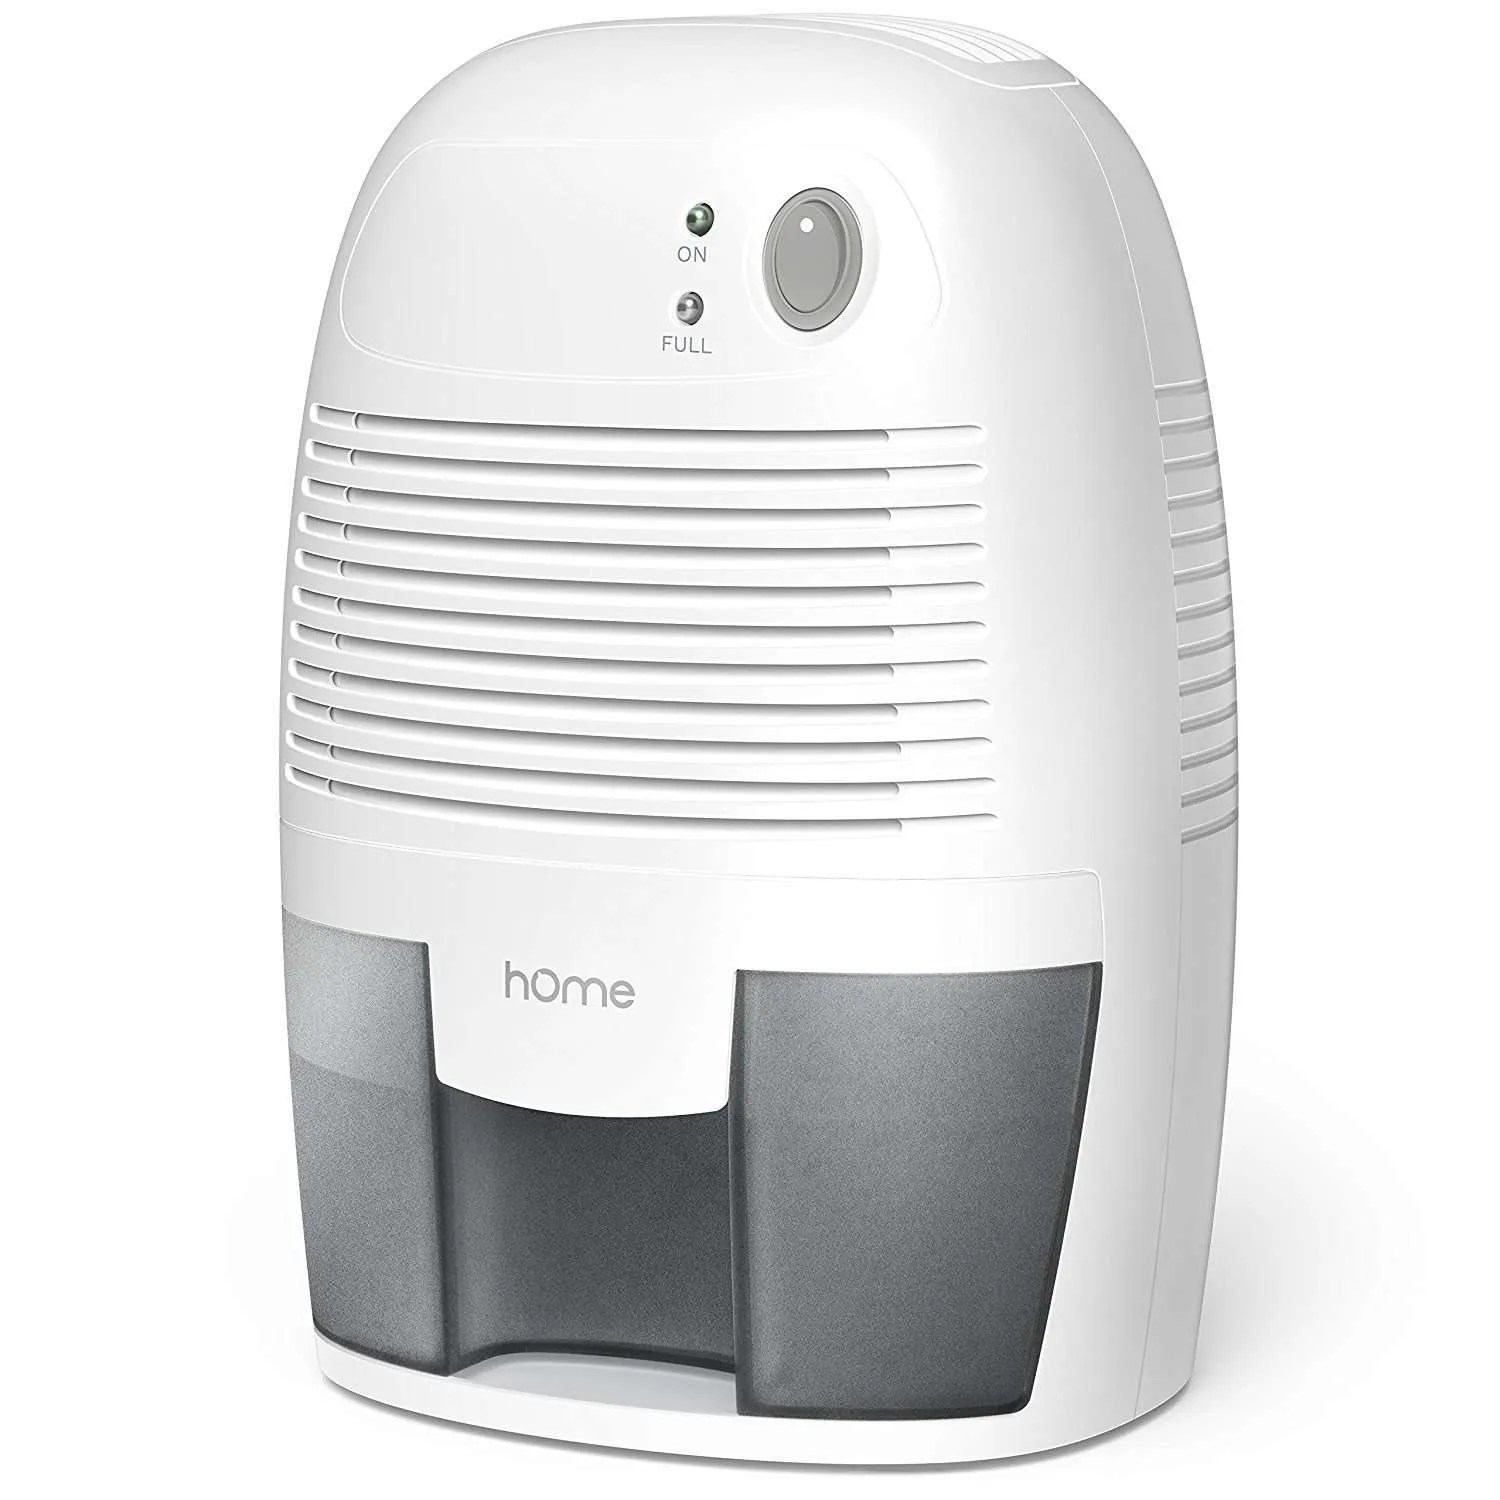 Diy Dehumidifier Best Small Bathroom Dehumidifier 2019 Reviews Let Sremovemold